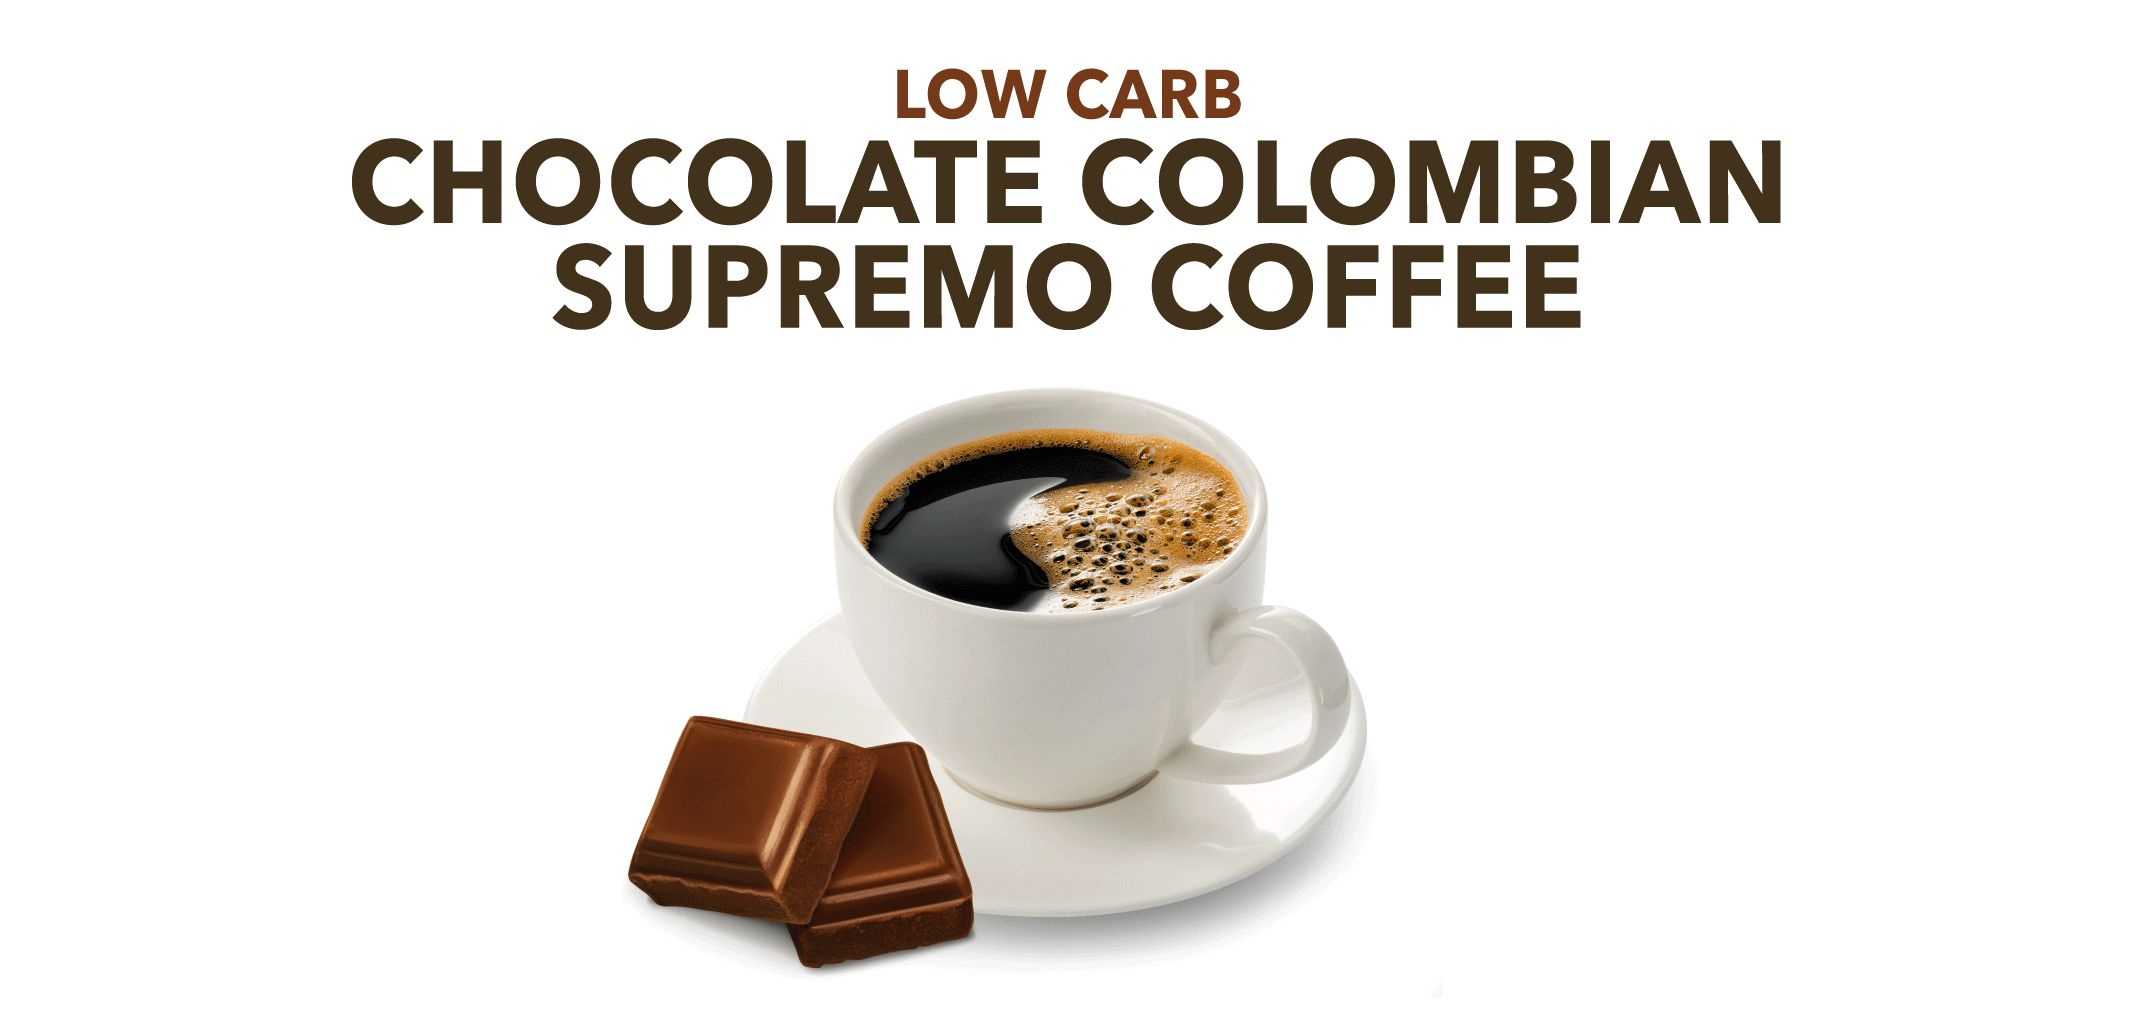 low carb chocolate colombian supremo coffee label image